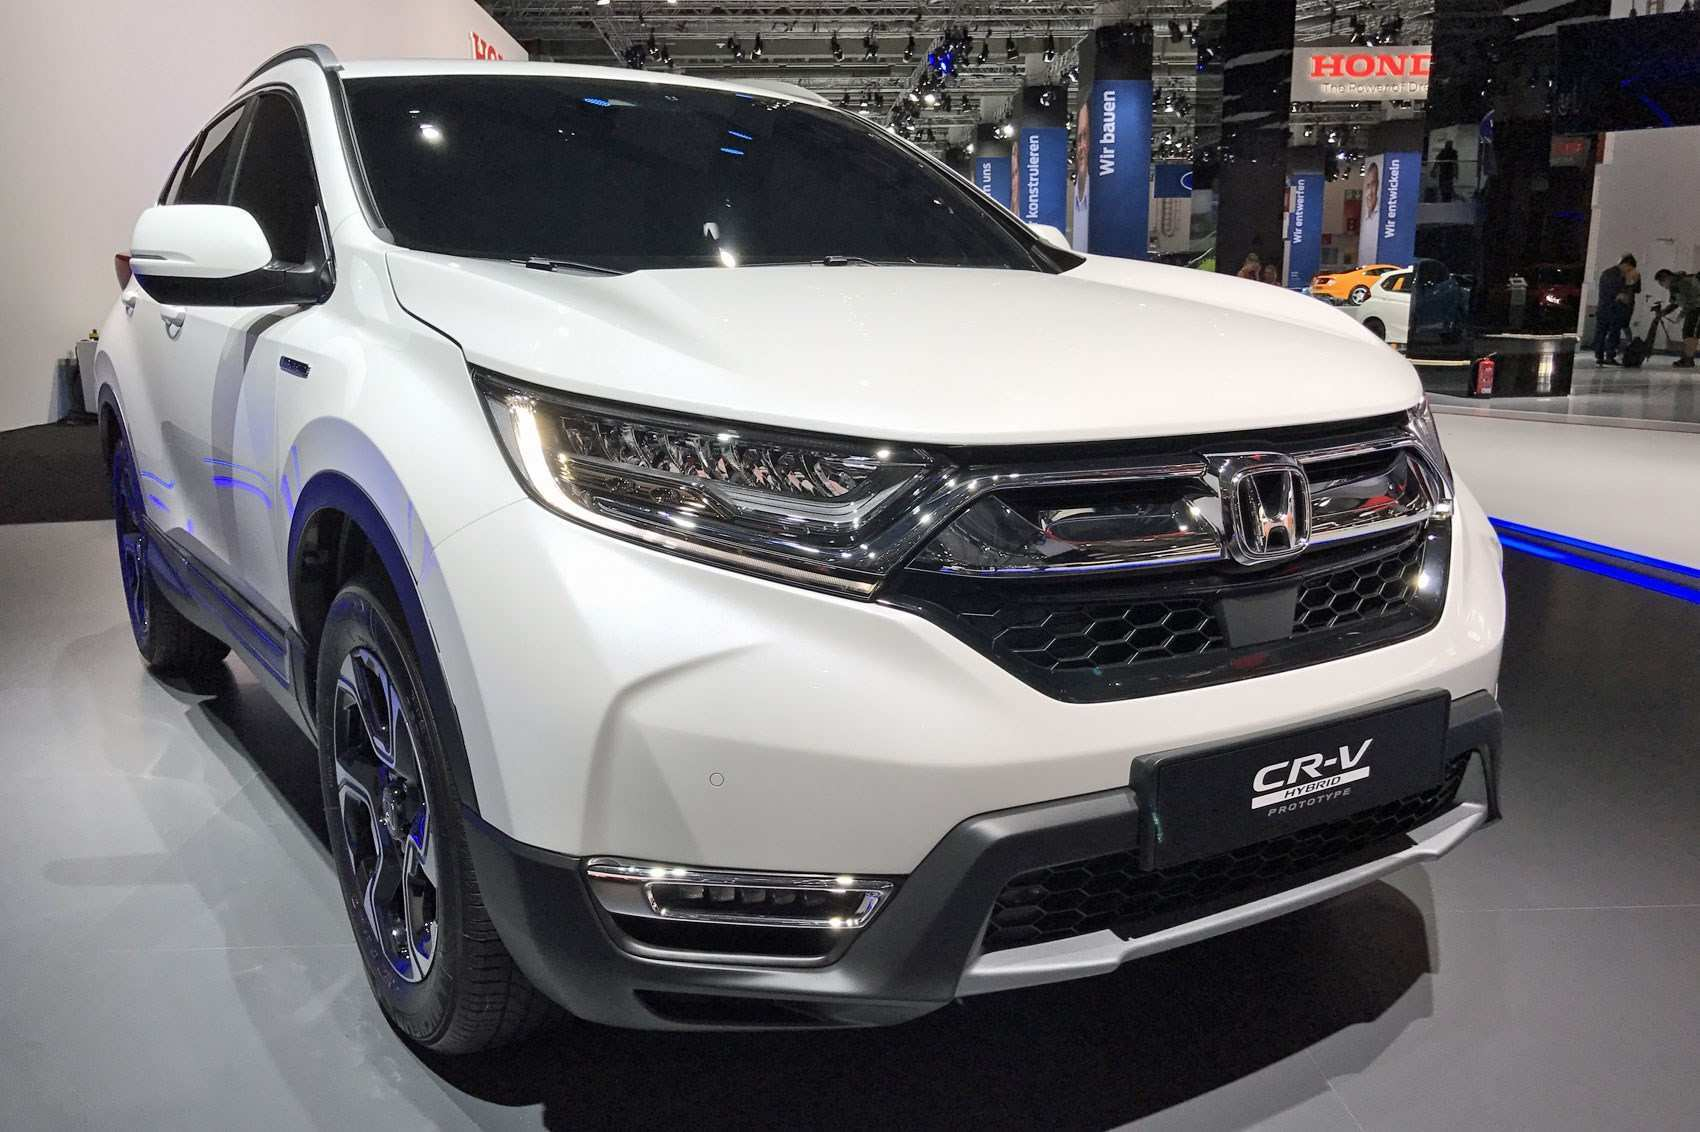 76 The Honda Vezel Hybrid 2020 Images